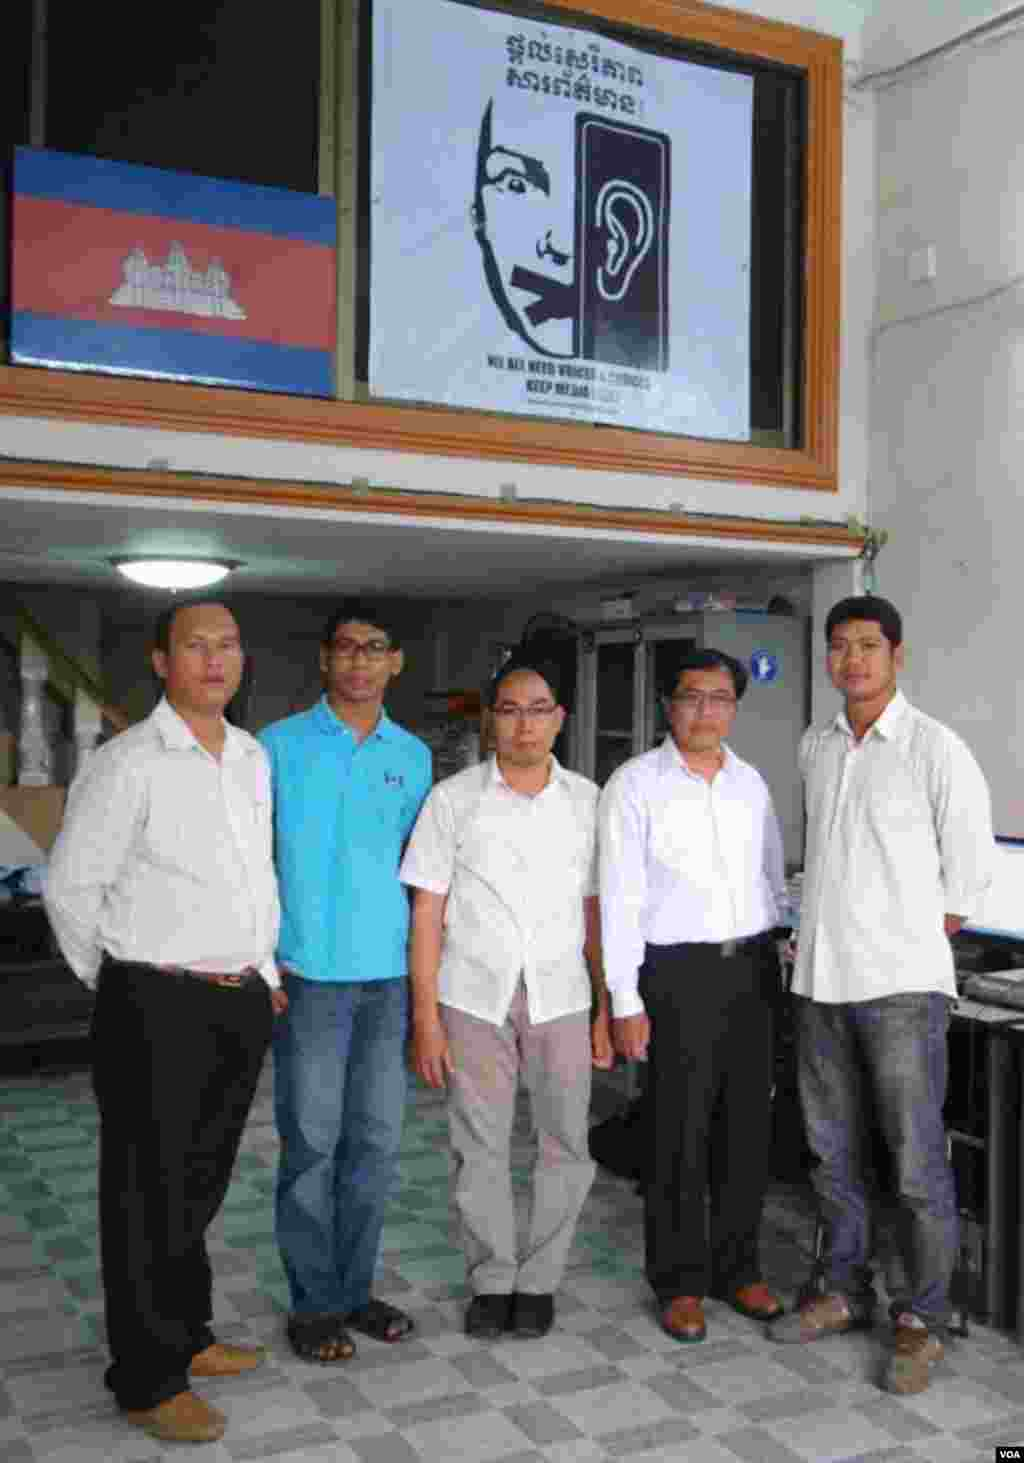 (left to right) Reaksmey Heng, Theara Khoun, Sothanarith Kong (editor), Sothy Lim (office manager), and Mony Say (TV Unit Coordinator) in VOA Phnom Penh office.